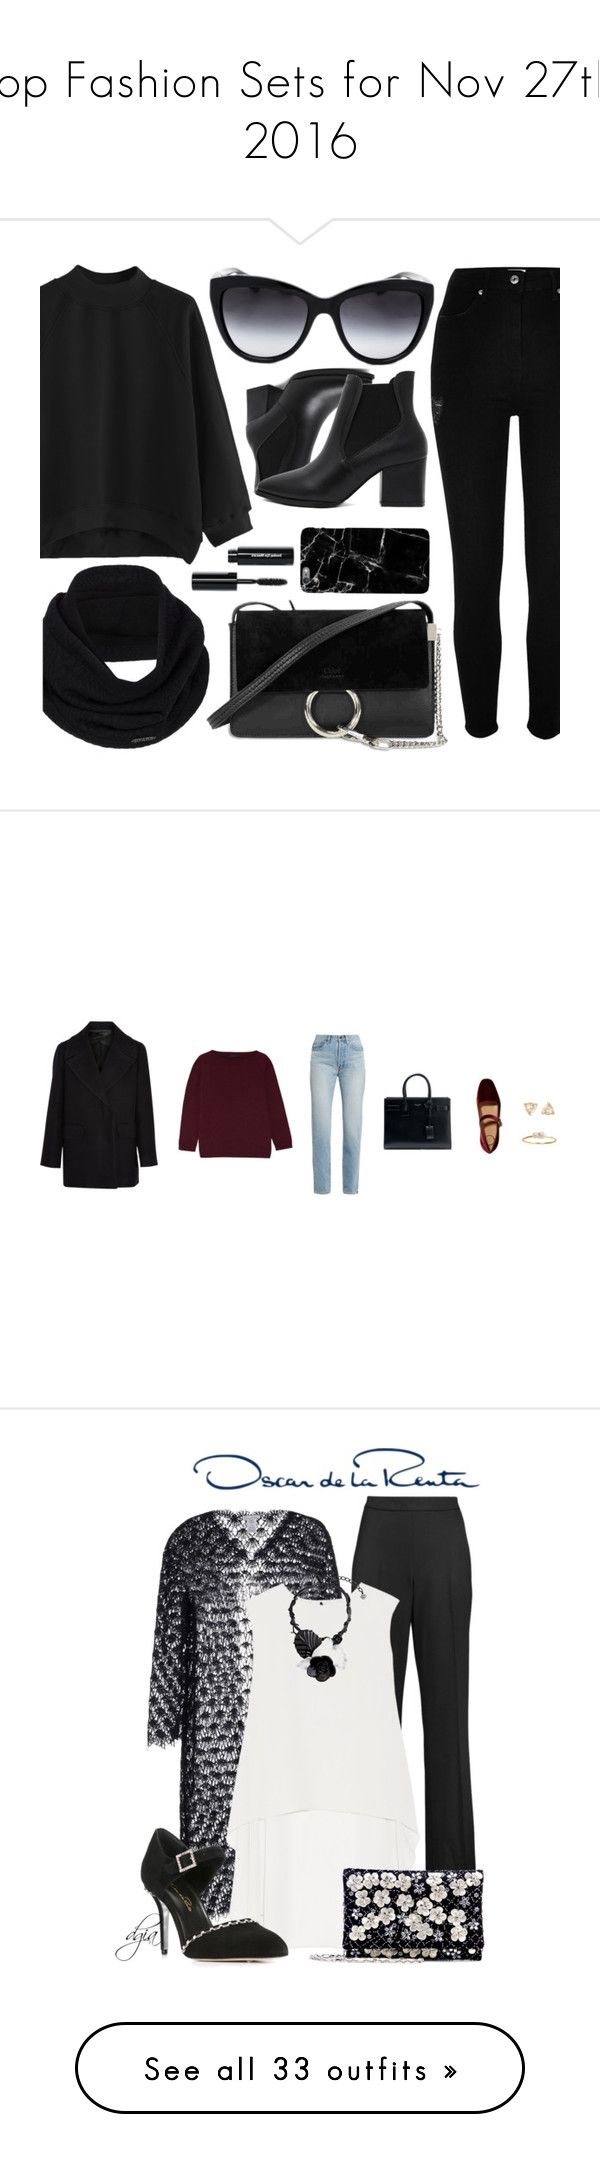 """""""Top Fashion Sets for Nov 27th, 2016"""" by polyvore ❤ liked on Polyvore featuring River Island, Dolce&Gabbana, prAna, Chloé, Bobbi Brown Cosmetics, black, The Row, Serge Lutens, Hermès and Yves Saint Laurent"""